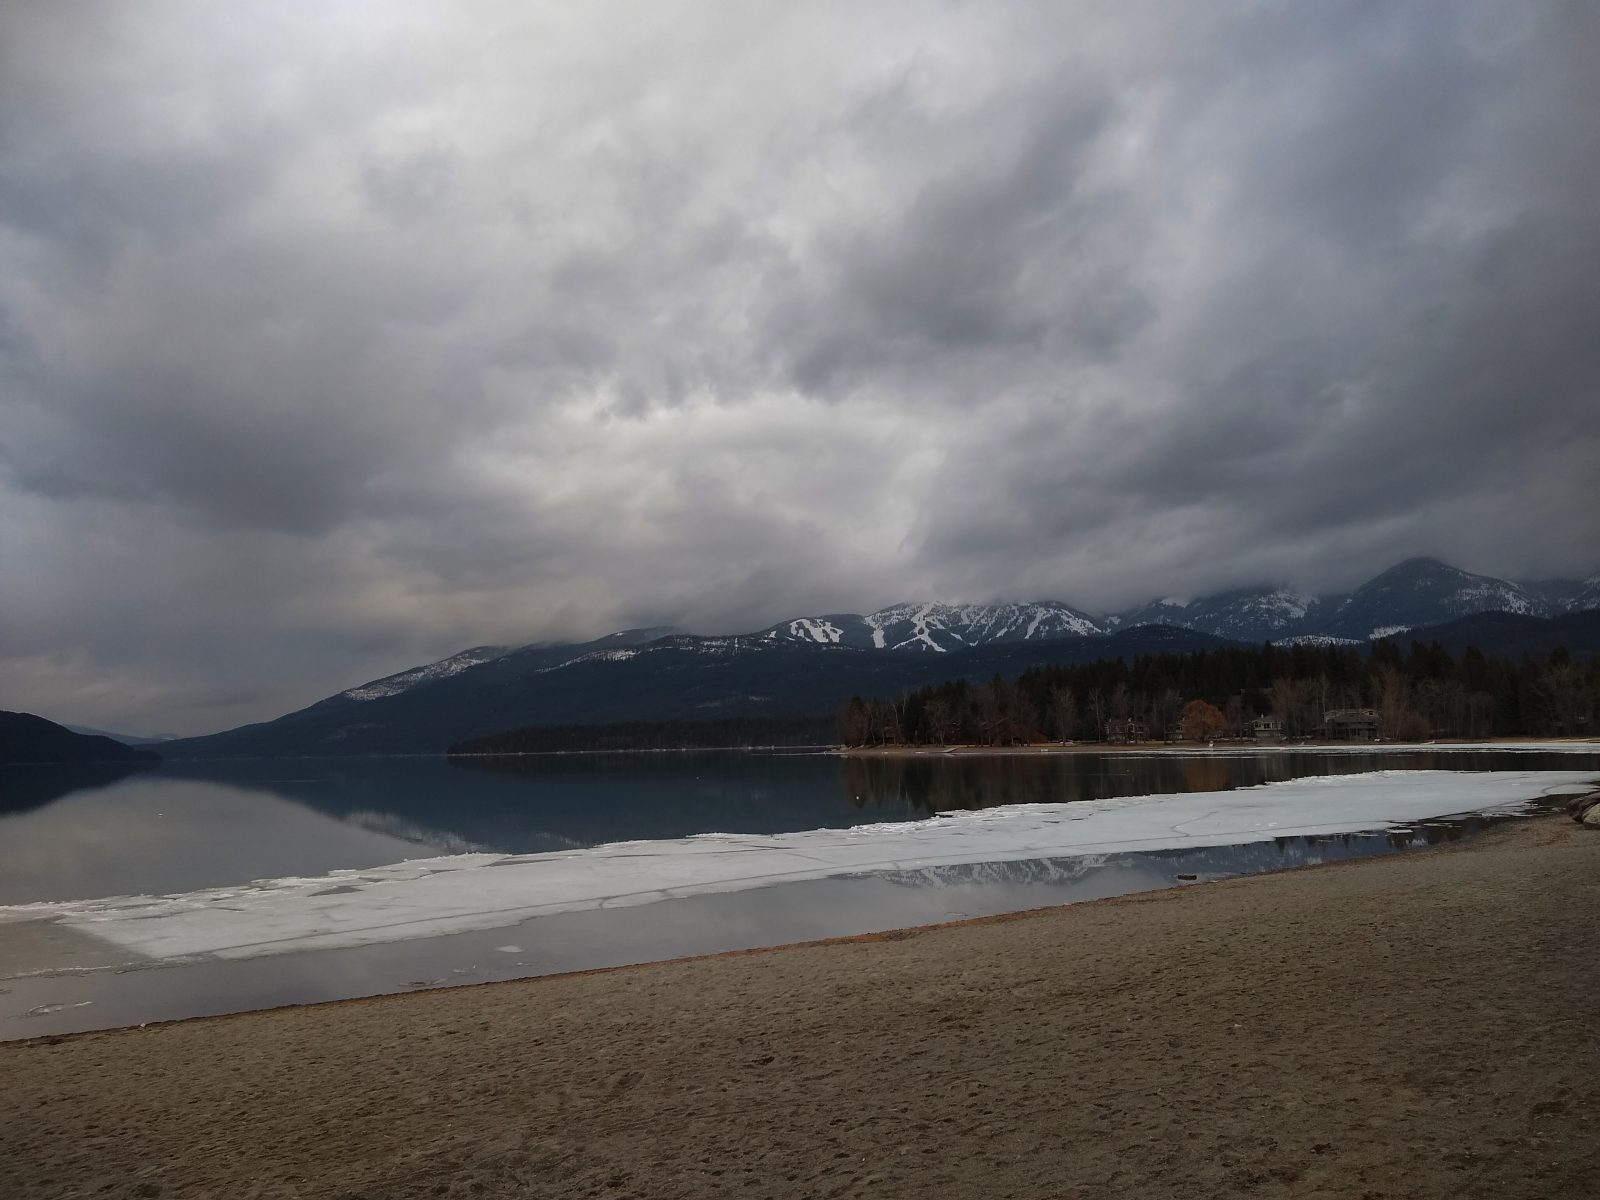 Whitefish Lake - March 27, 2020